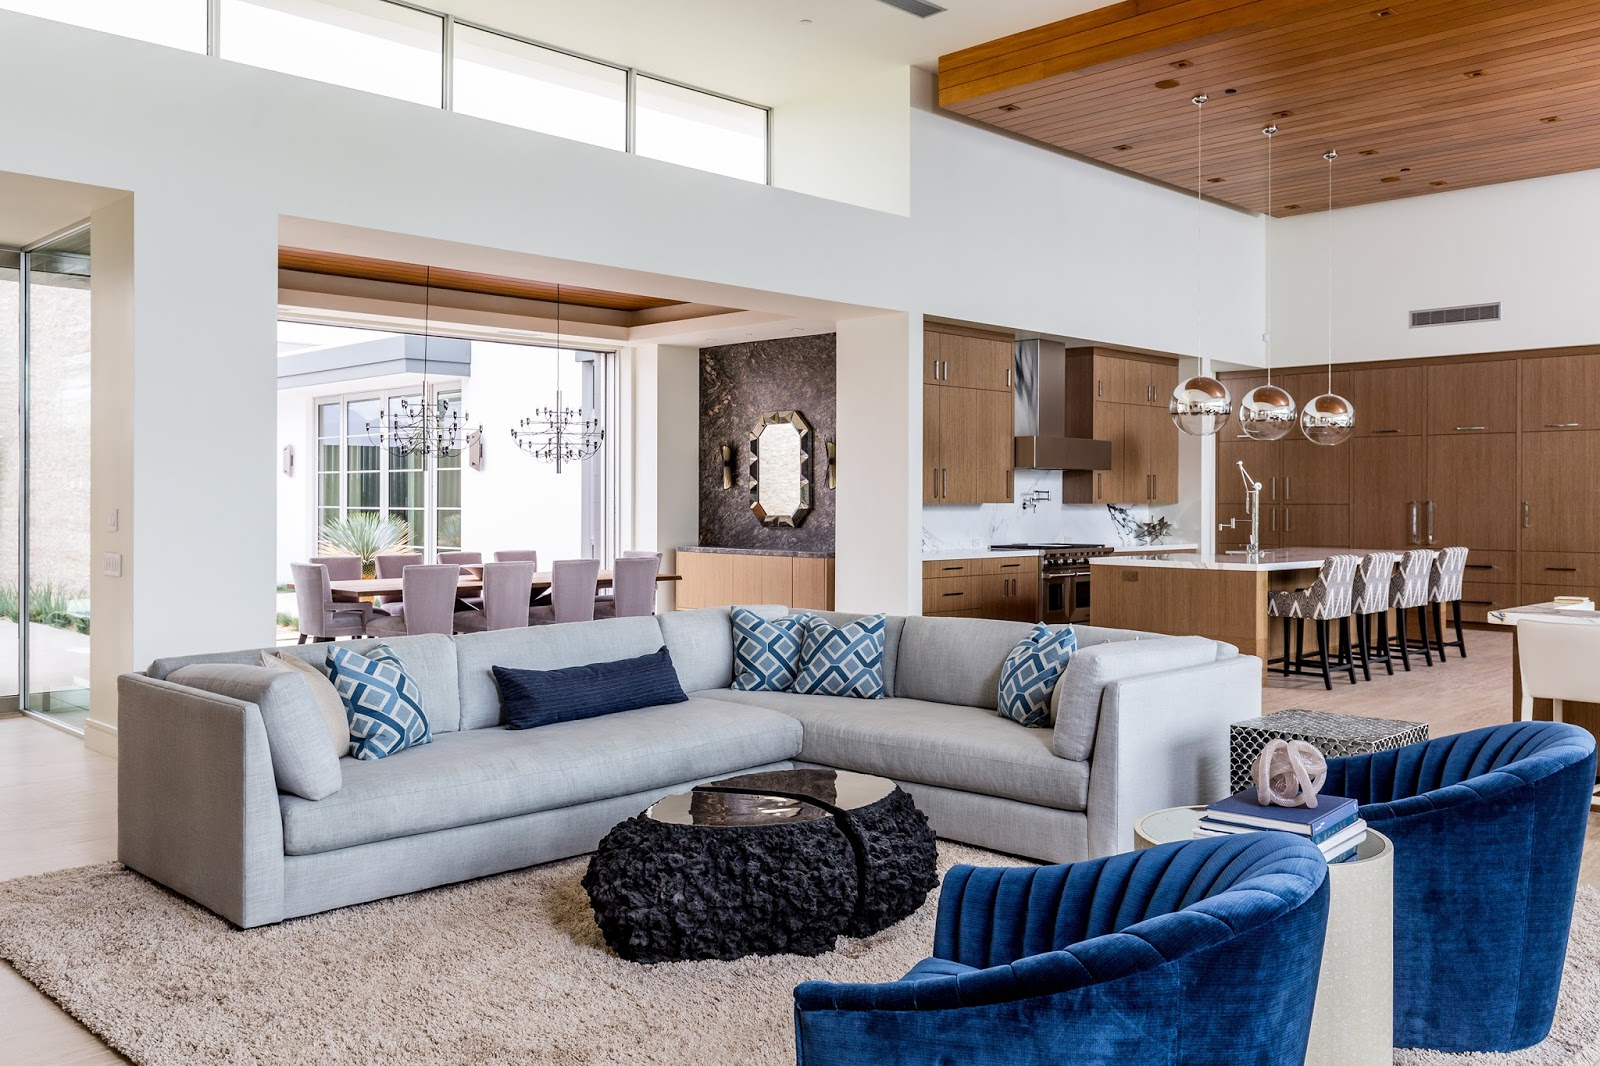 Is it necessary to hire a professional interior designer?